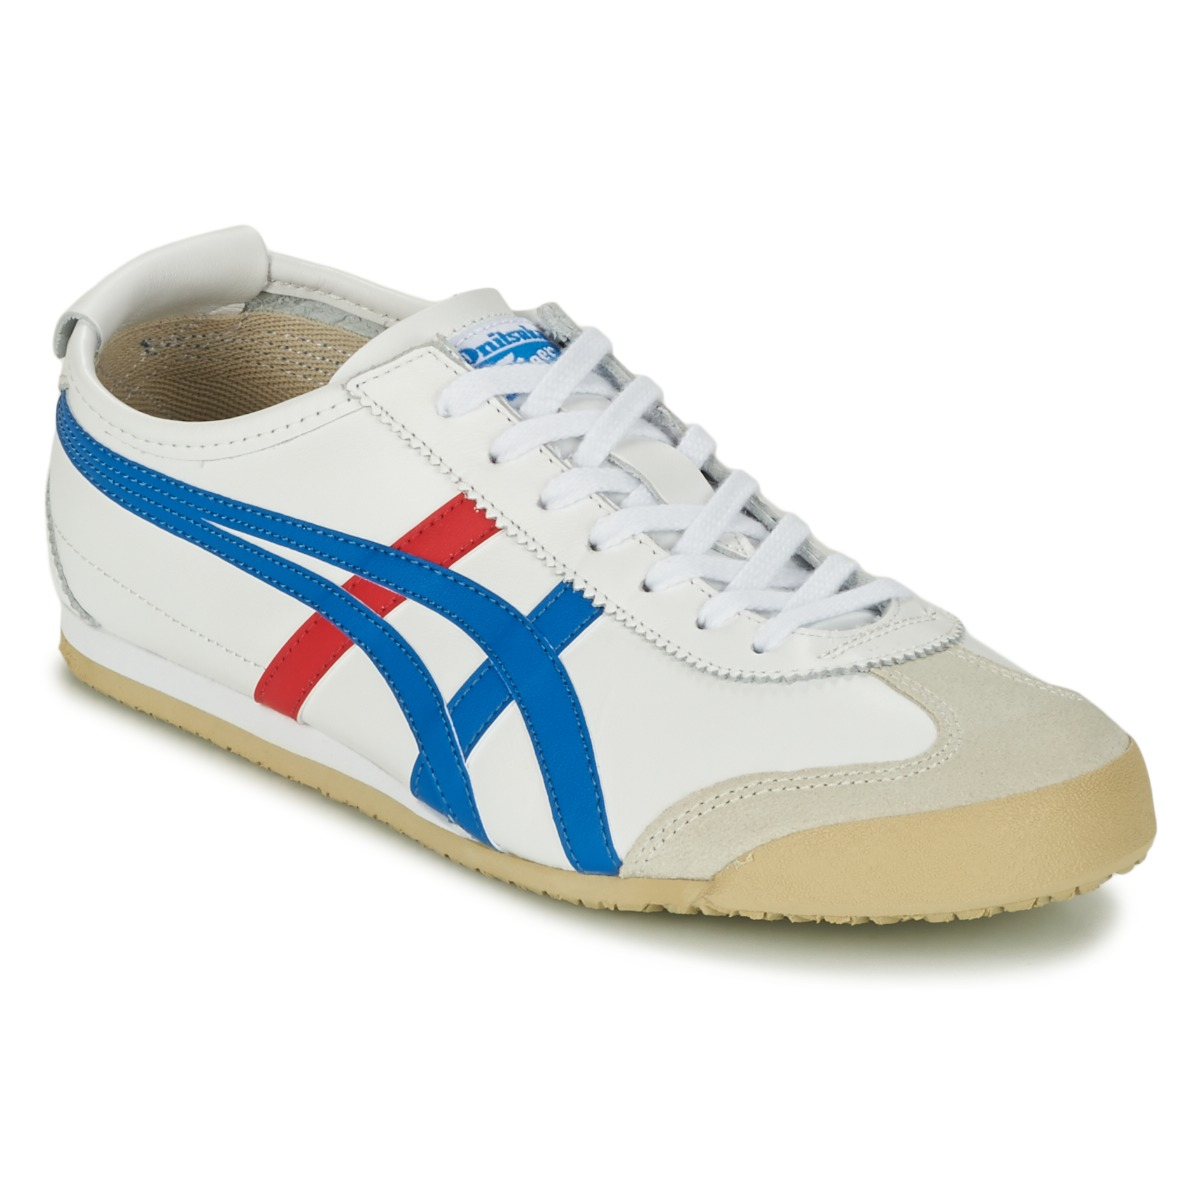 low top trainers onitsuka tiger mexico 66 white blue red free delivery with spartoo uk. Black Bedroom Furniture Sets. Home Design Ideas